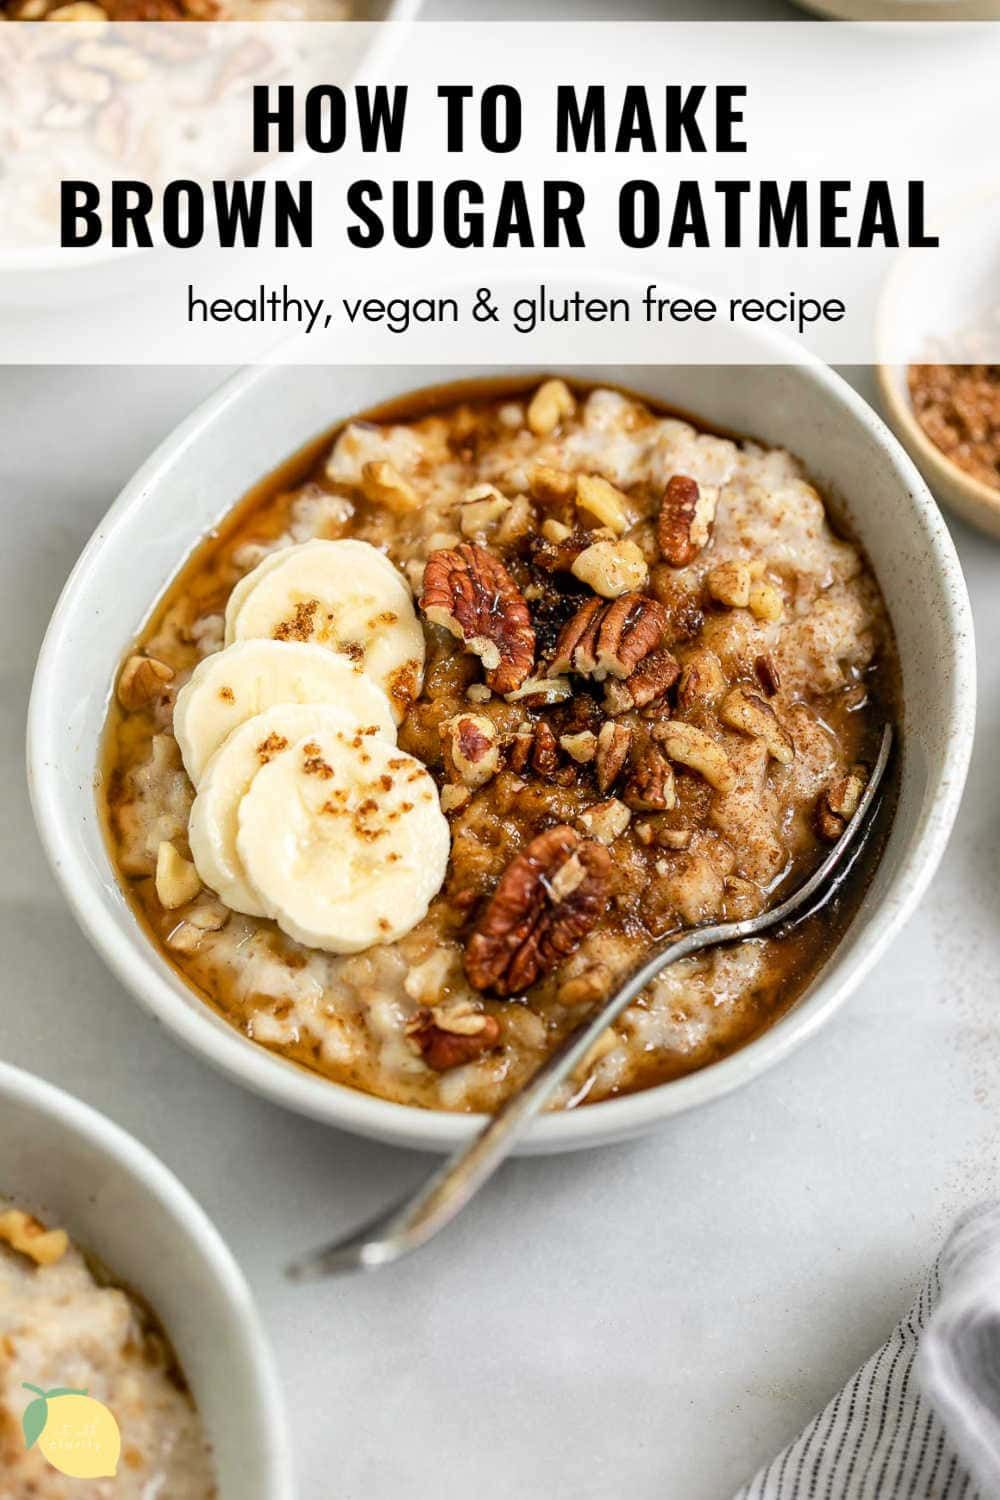 How To Make Oatmeal Easy Recipe Eat With Clarity Recipe In 2020 Best Oatmeal Recipe Healthy Oatmeal Recipes Healthy Oatmeal Bowl